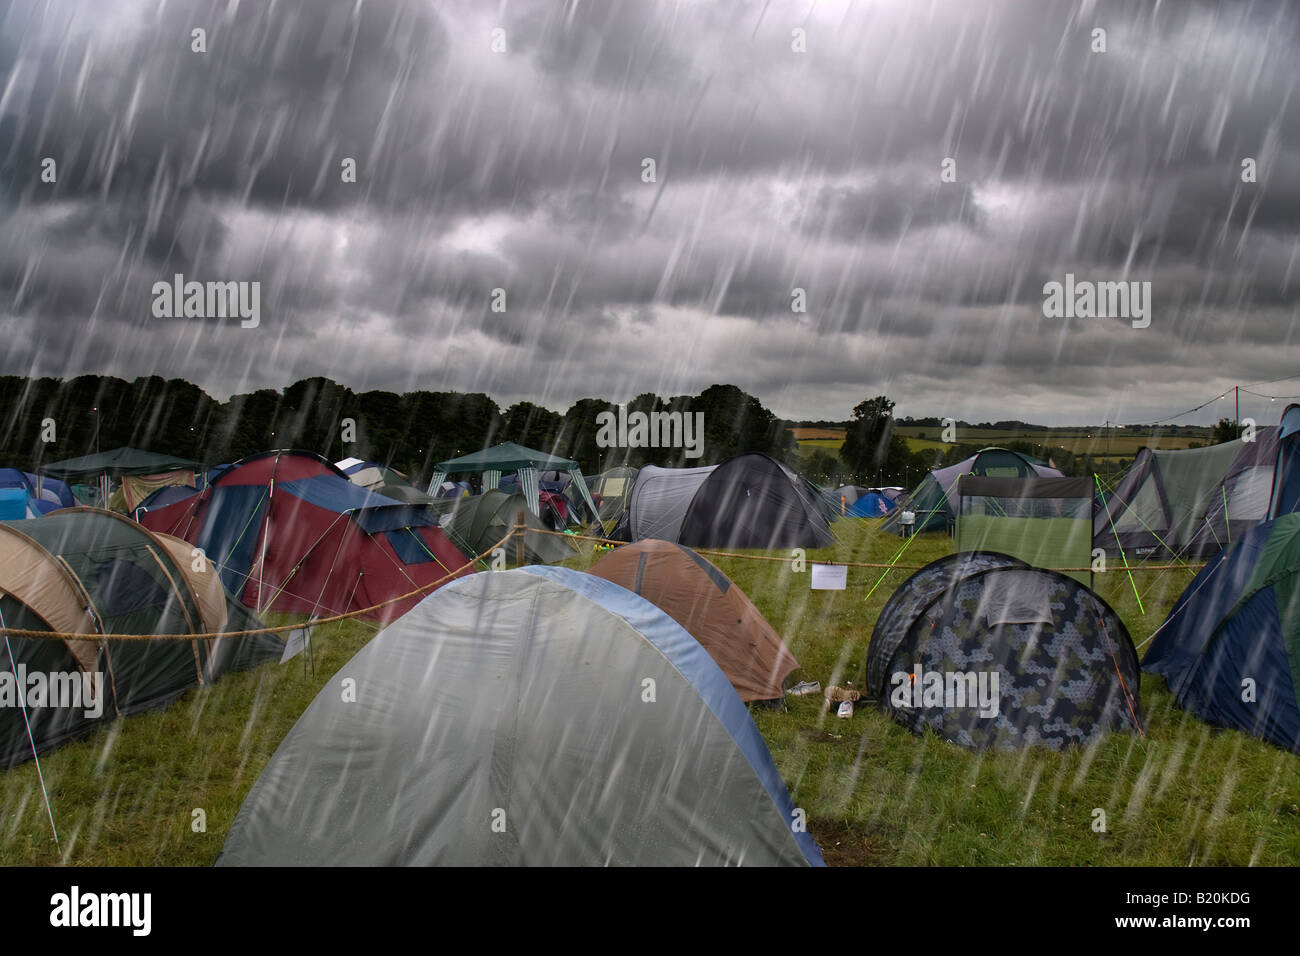 Dark clouds in the sky with torrential rain falling on tents at a campsite at the Cornbury Music Festival - Stock Image